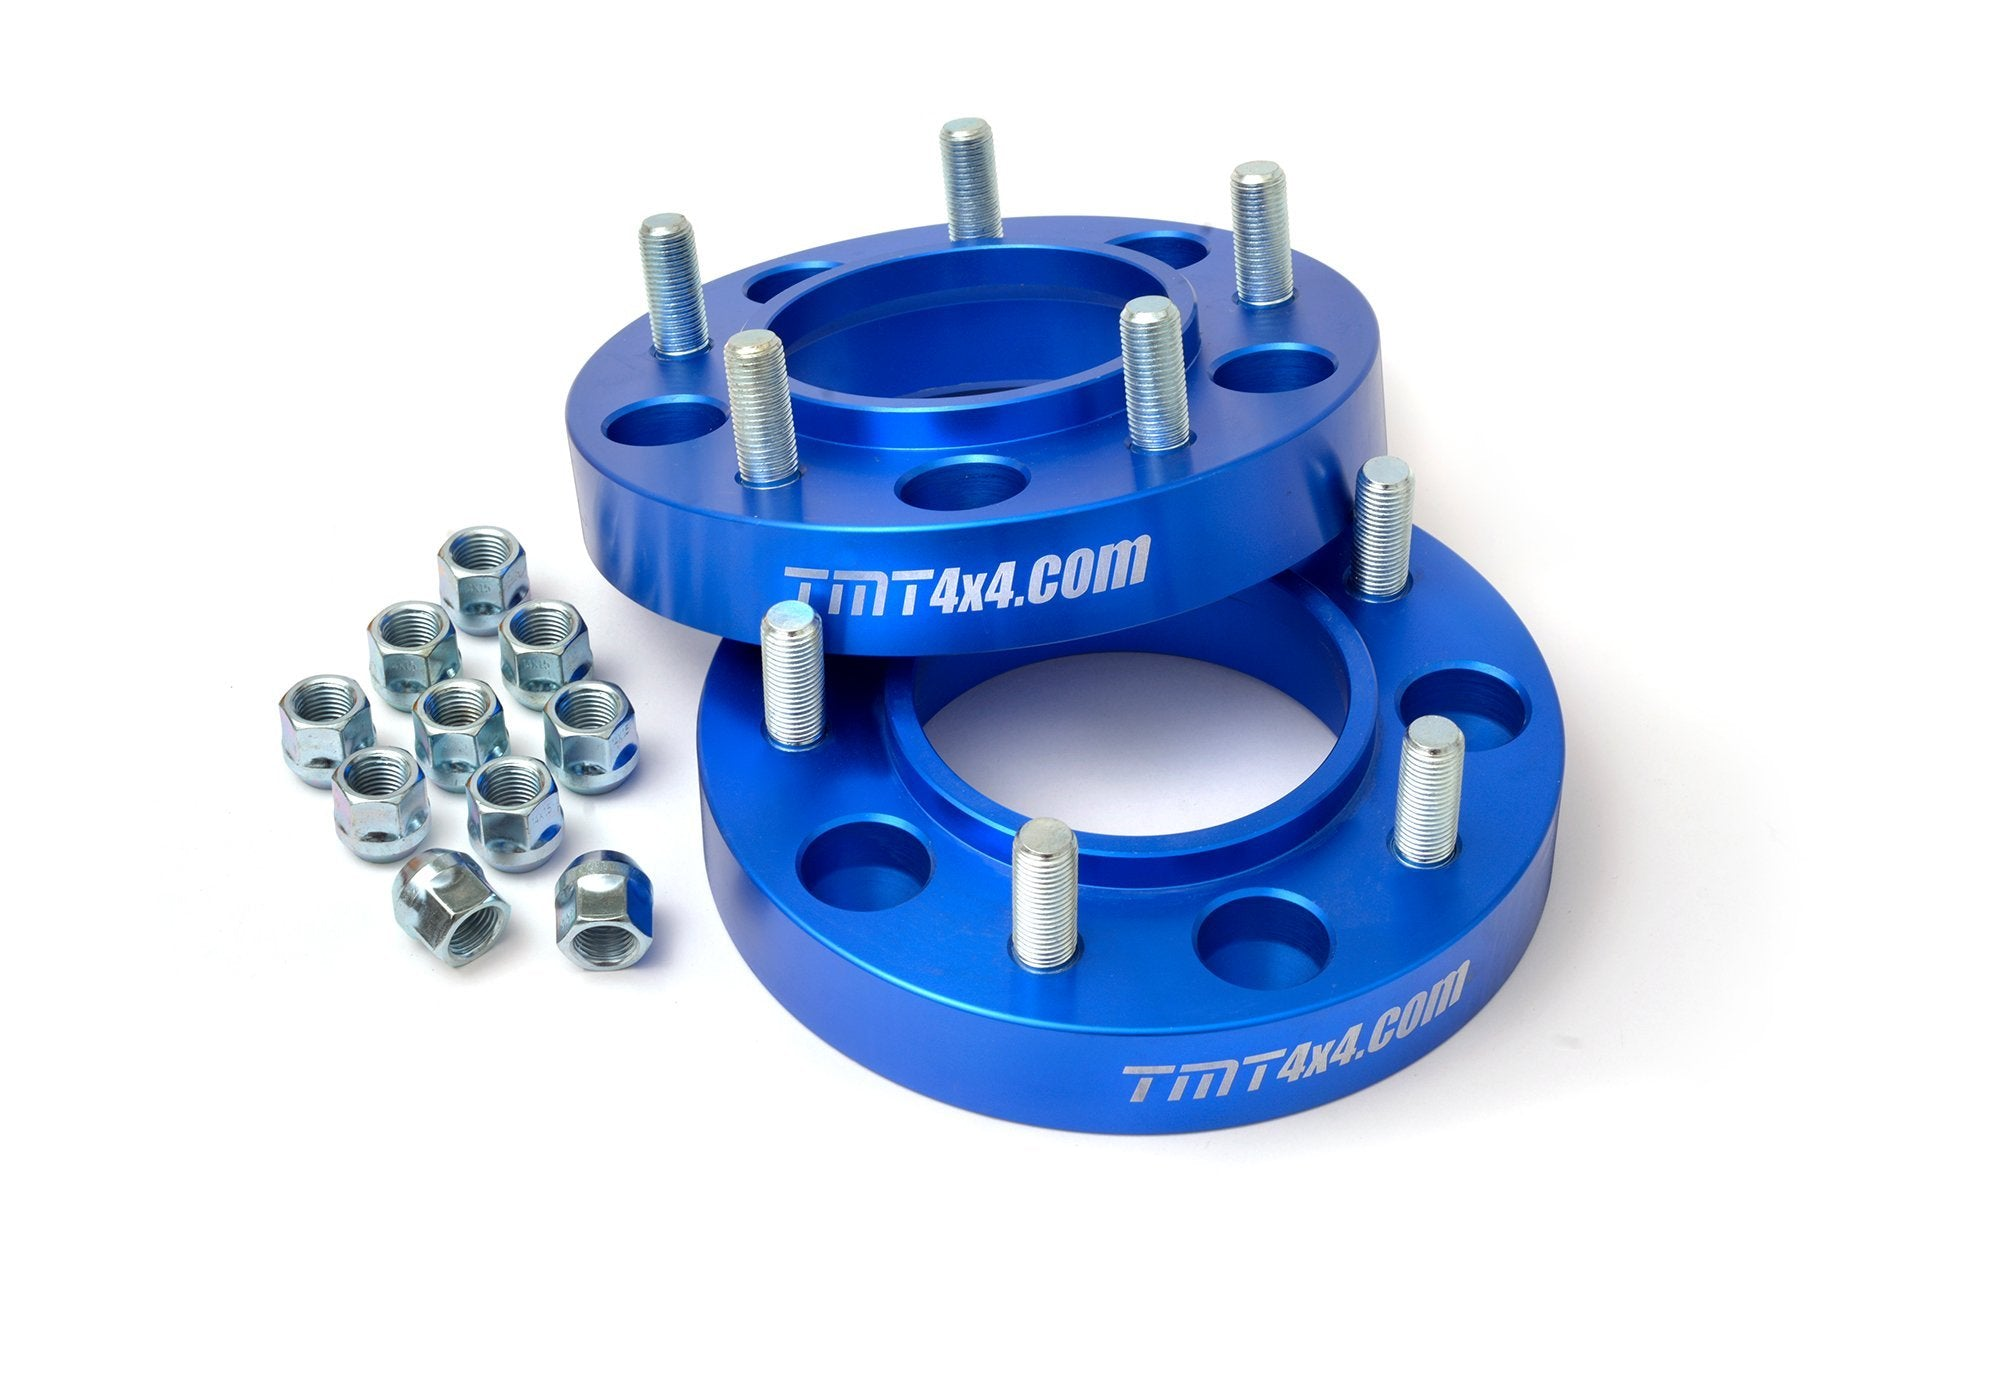 TMT WHEEL SPACERS FOR TUNDRA (2ND GEN) - 5 LUGS HUB CENTRIC